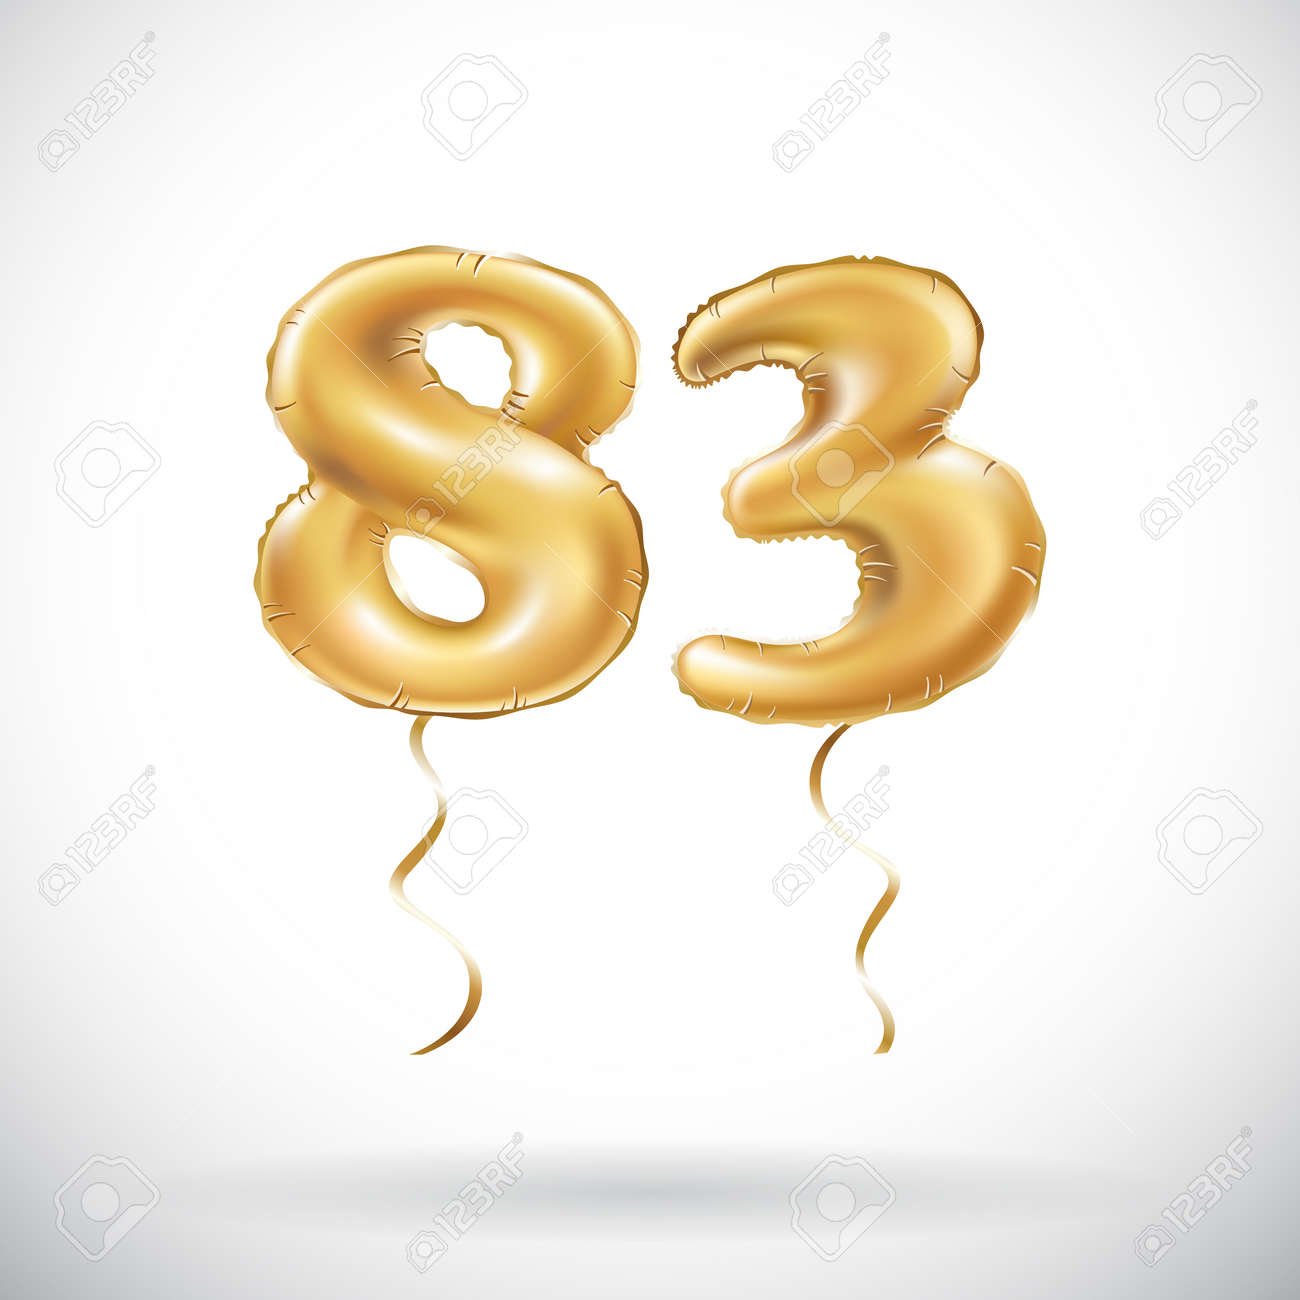 Vector Golden Number 83 Eighty Three Metallic Balloon Party Baloon Decoration Balloons Anniversary Sign For Happy Holiday Celebration Birthday